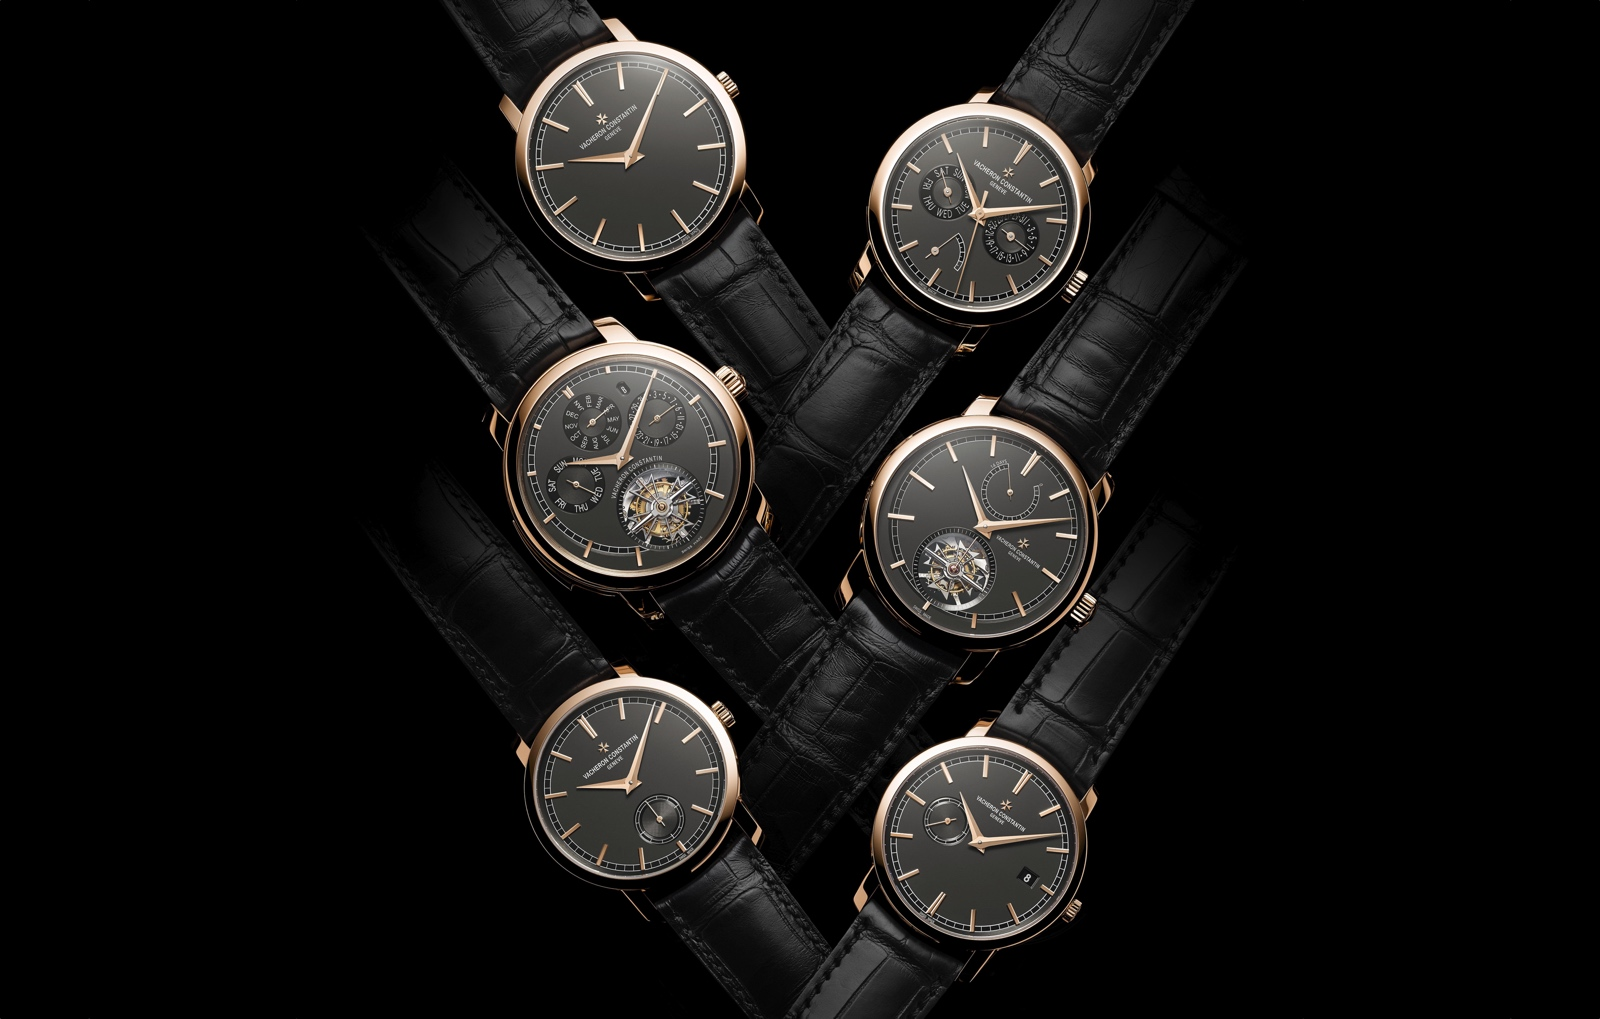 Vacheron Constantin Traditionnelle Slate Grey collection